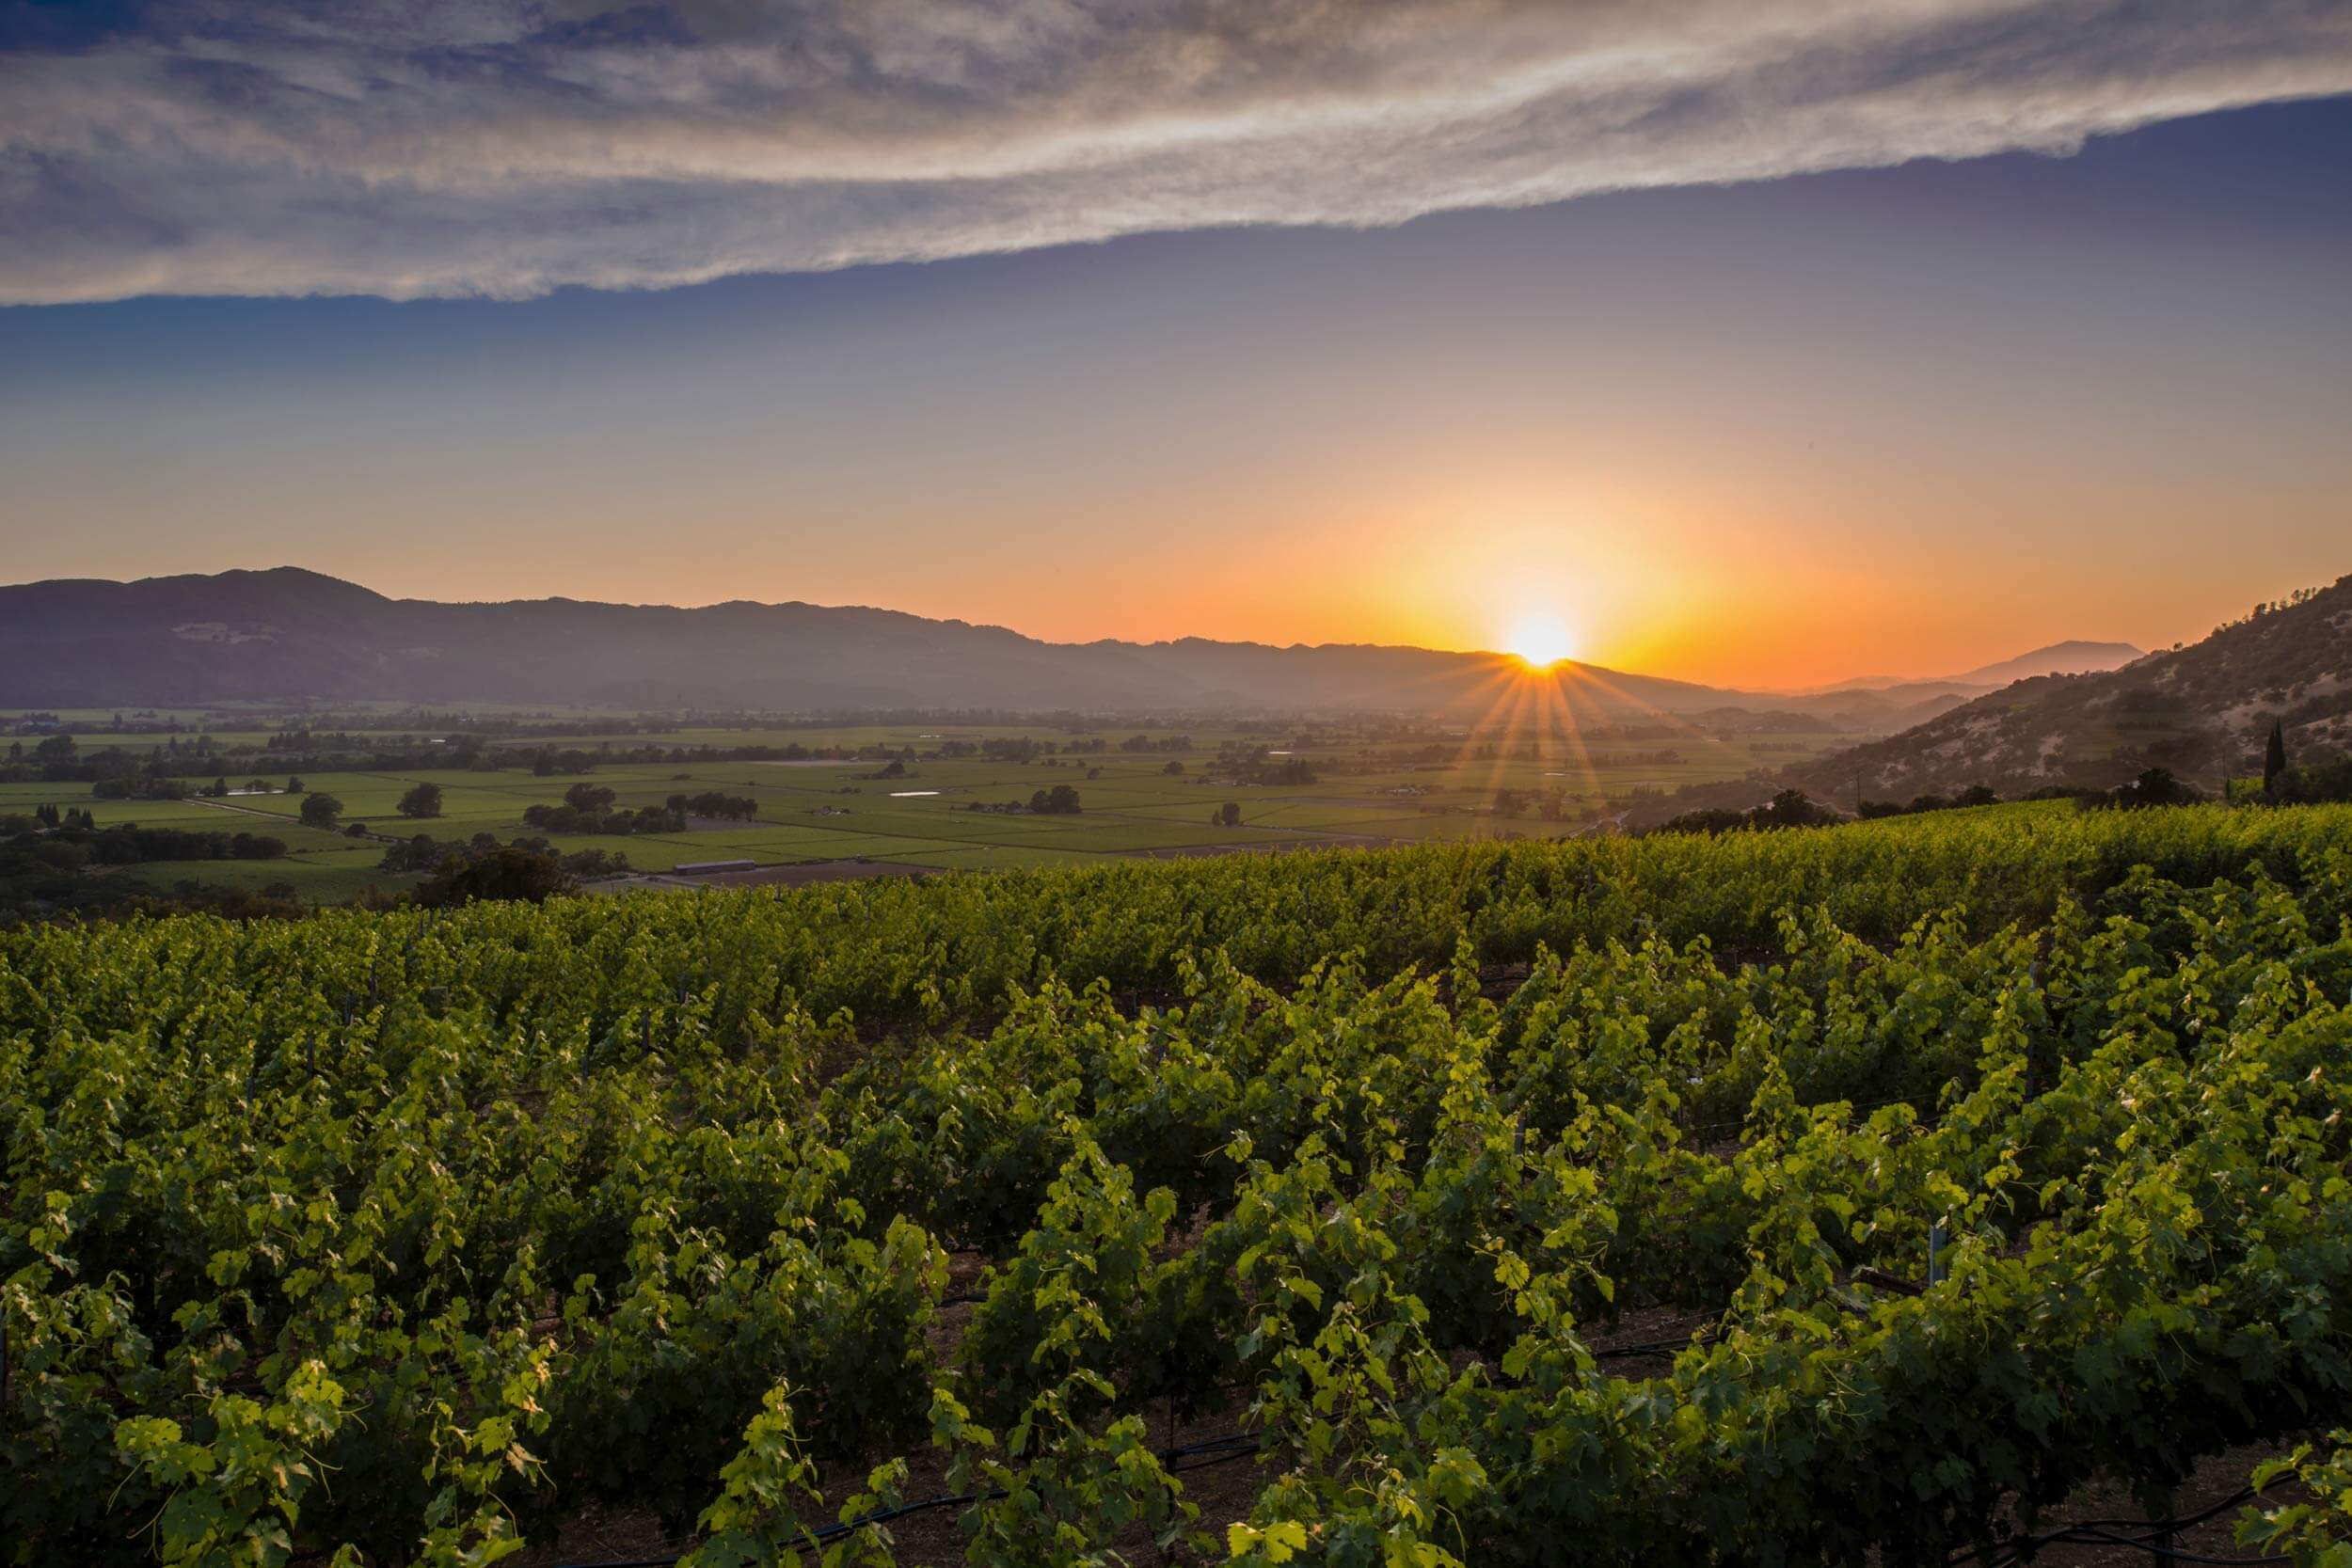 Sunset over the our Napa Valley estate vineyard with a view of the surrounding valley and mountains